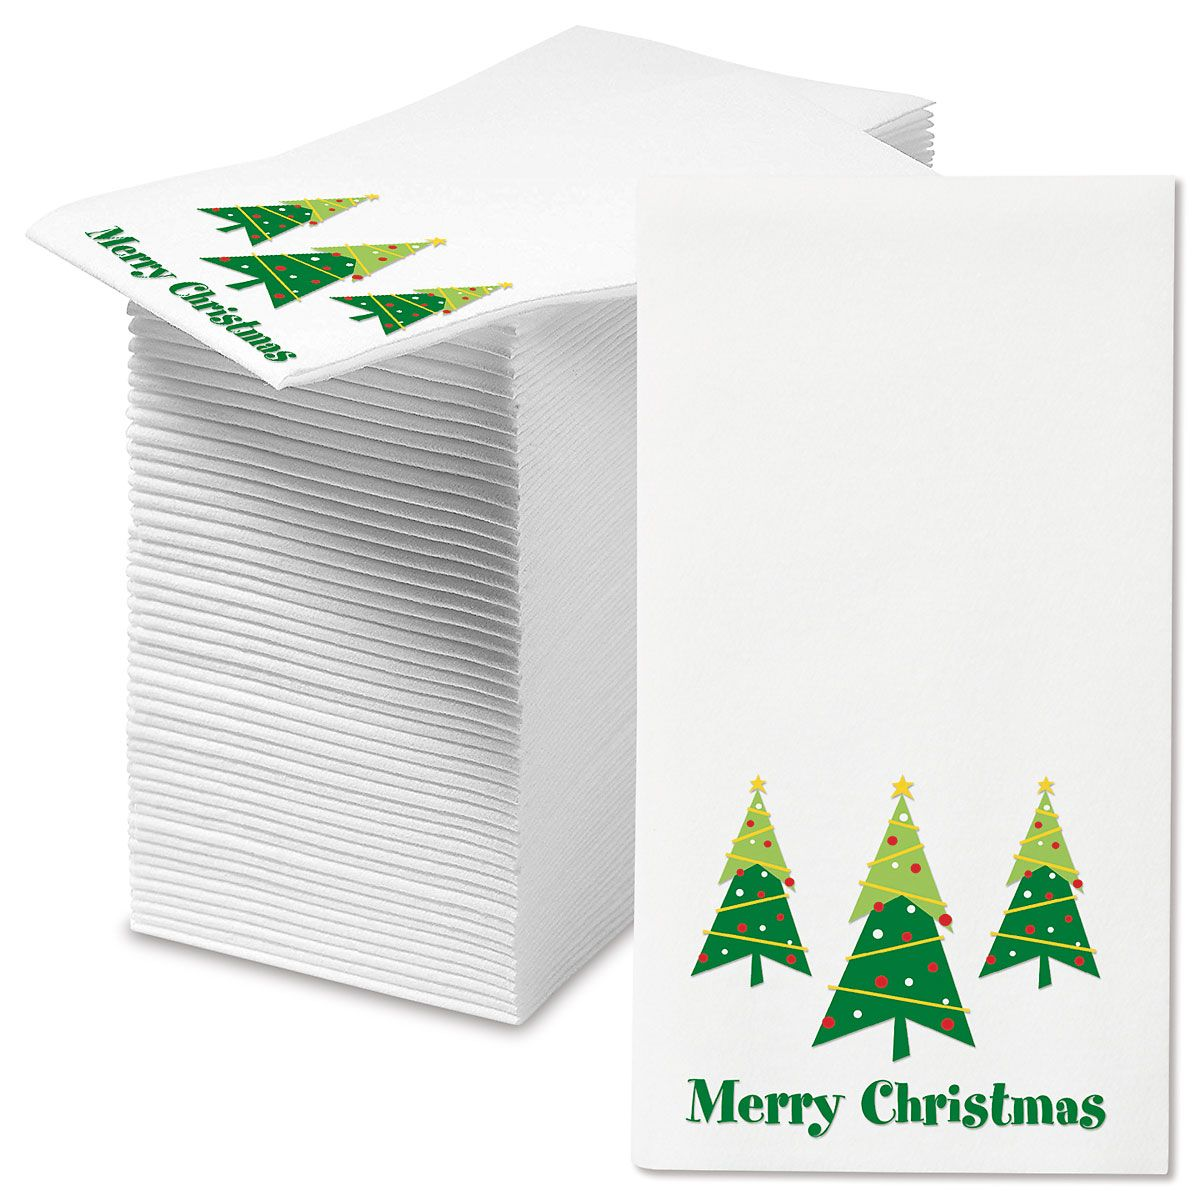 Merry Christmas Trees Disposable Hand Towels